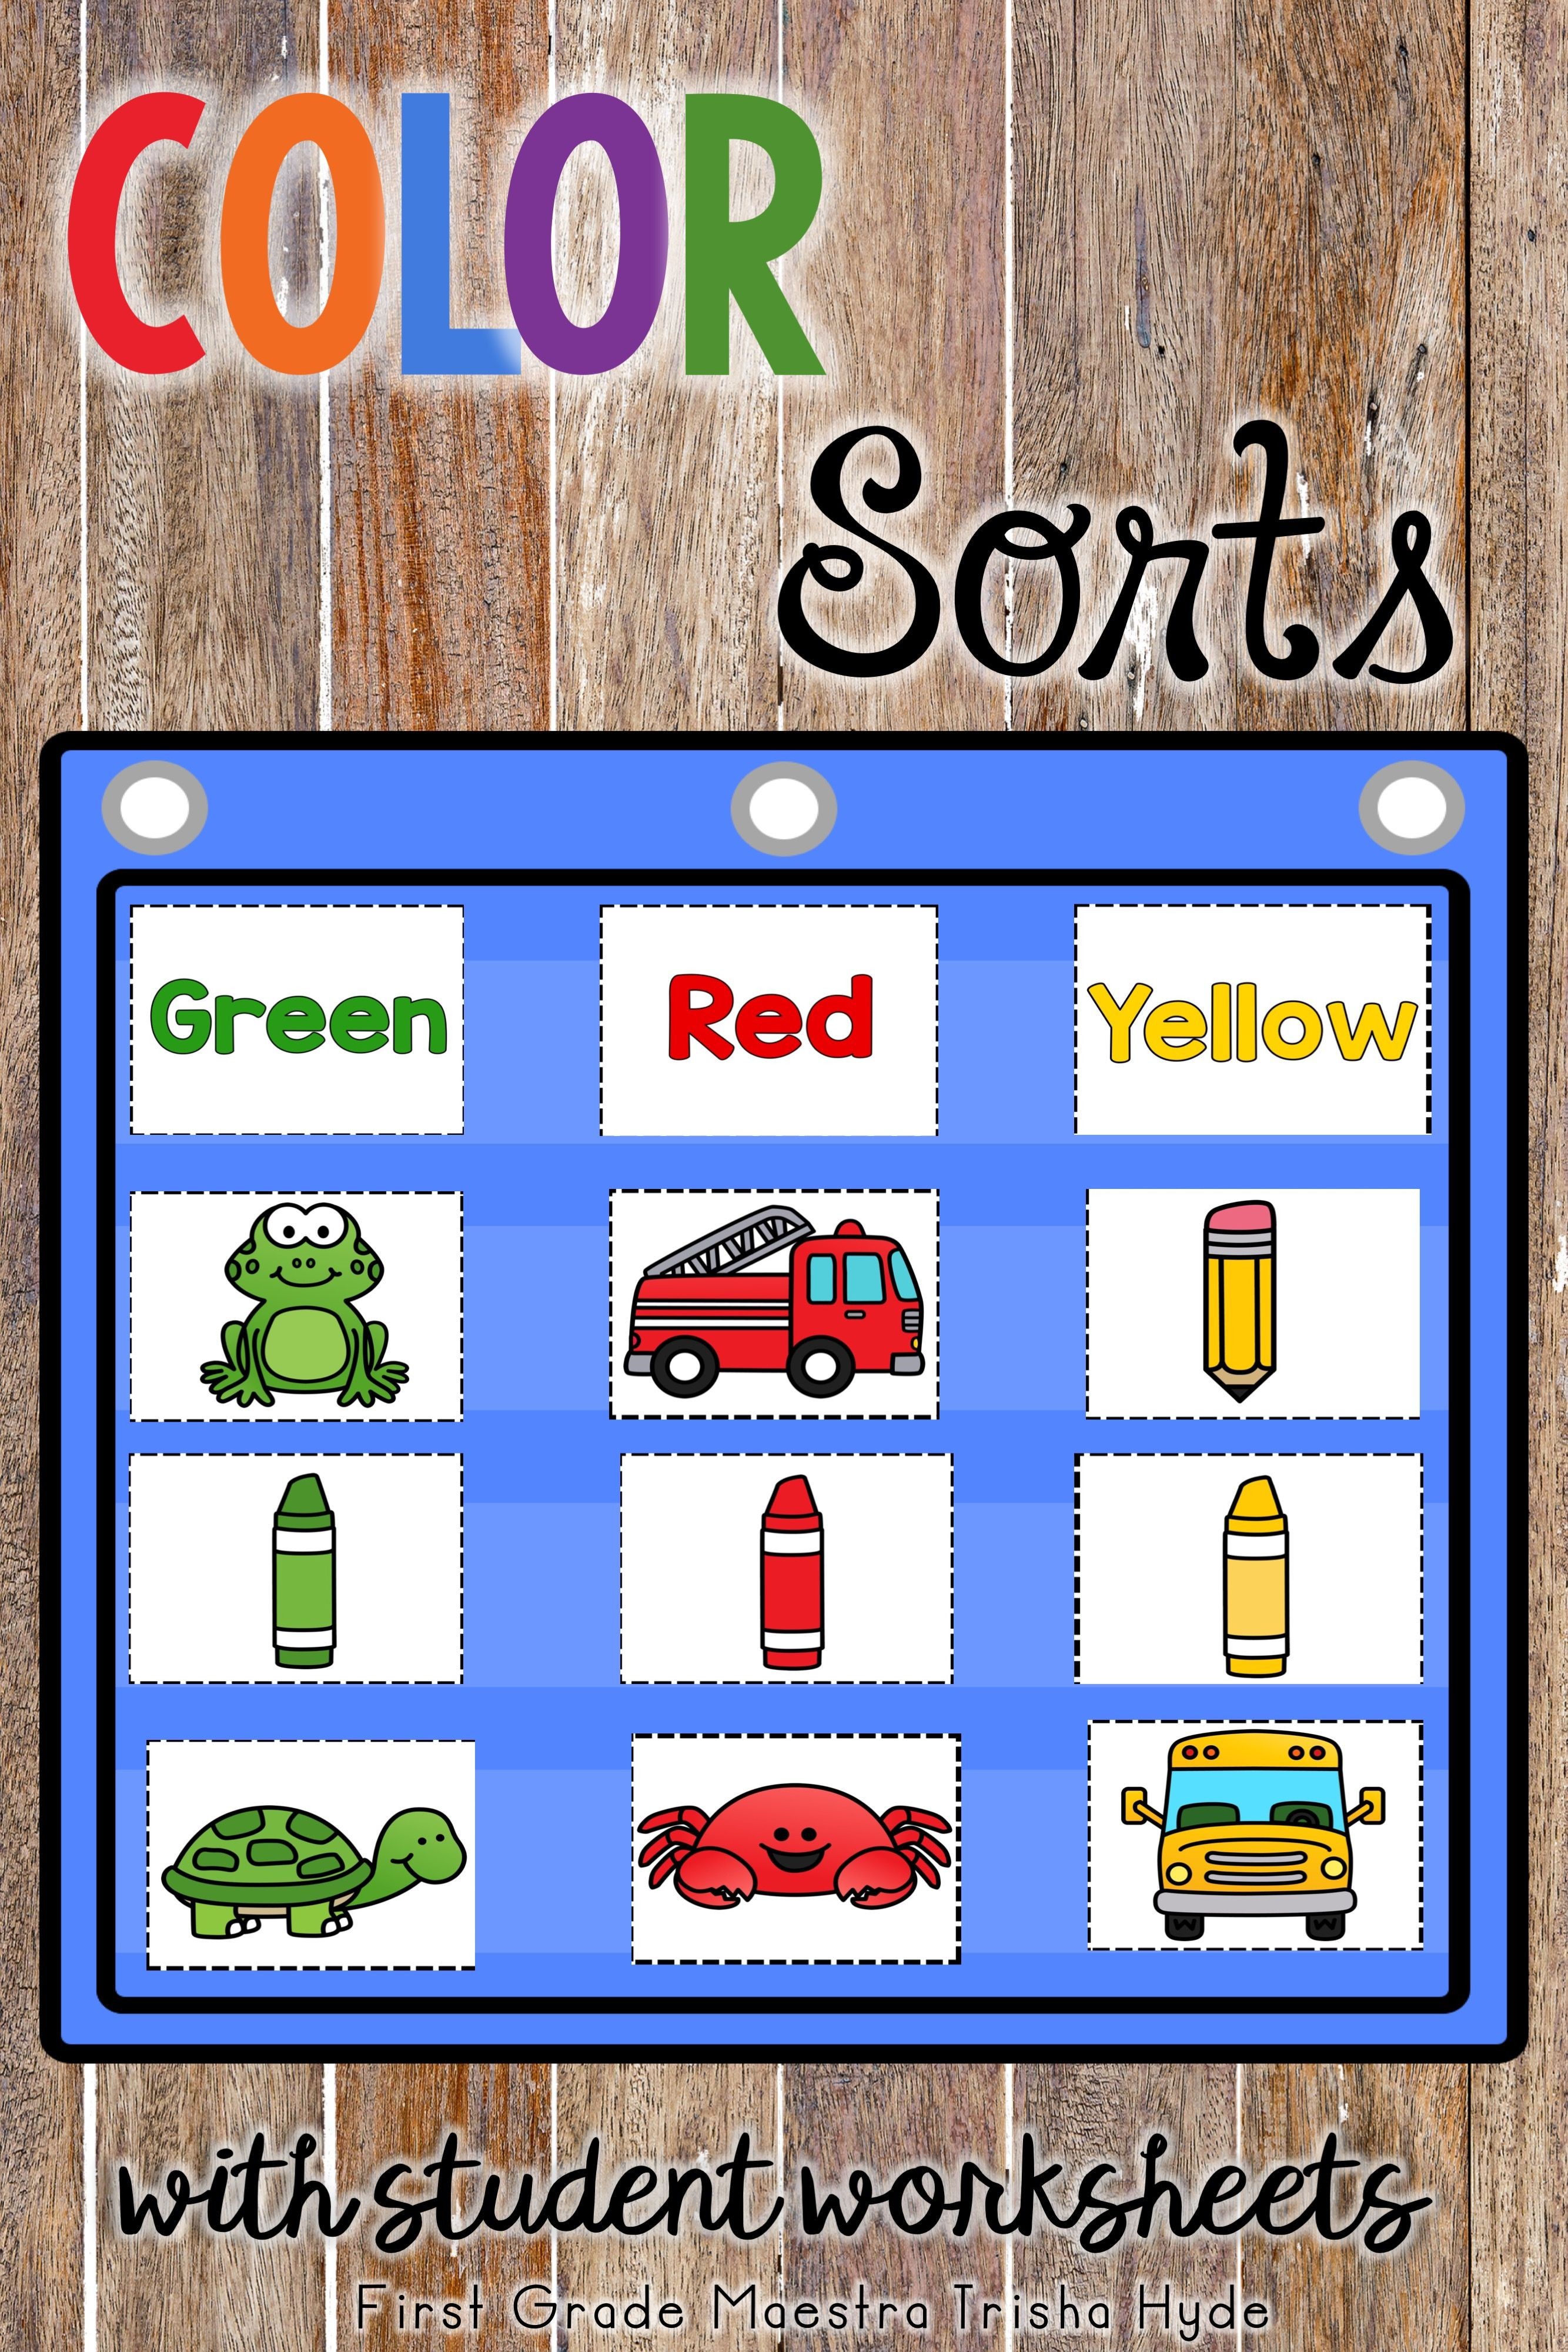 Learning Colors Can Be Fun For Your Student With These Bright And Colorful Sorts Students Wil Color Sorting Activities Color Sorting Beginning Of Kindergarten [ 4000 x 2667 Pixel ]